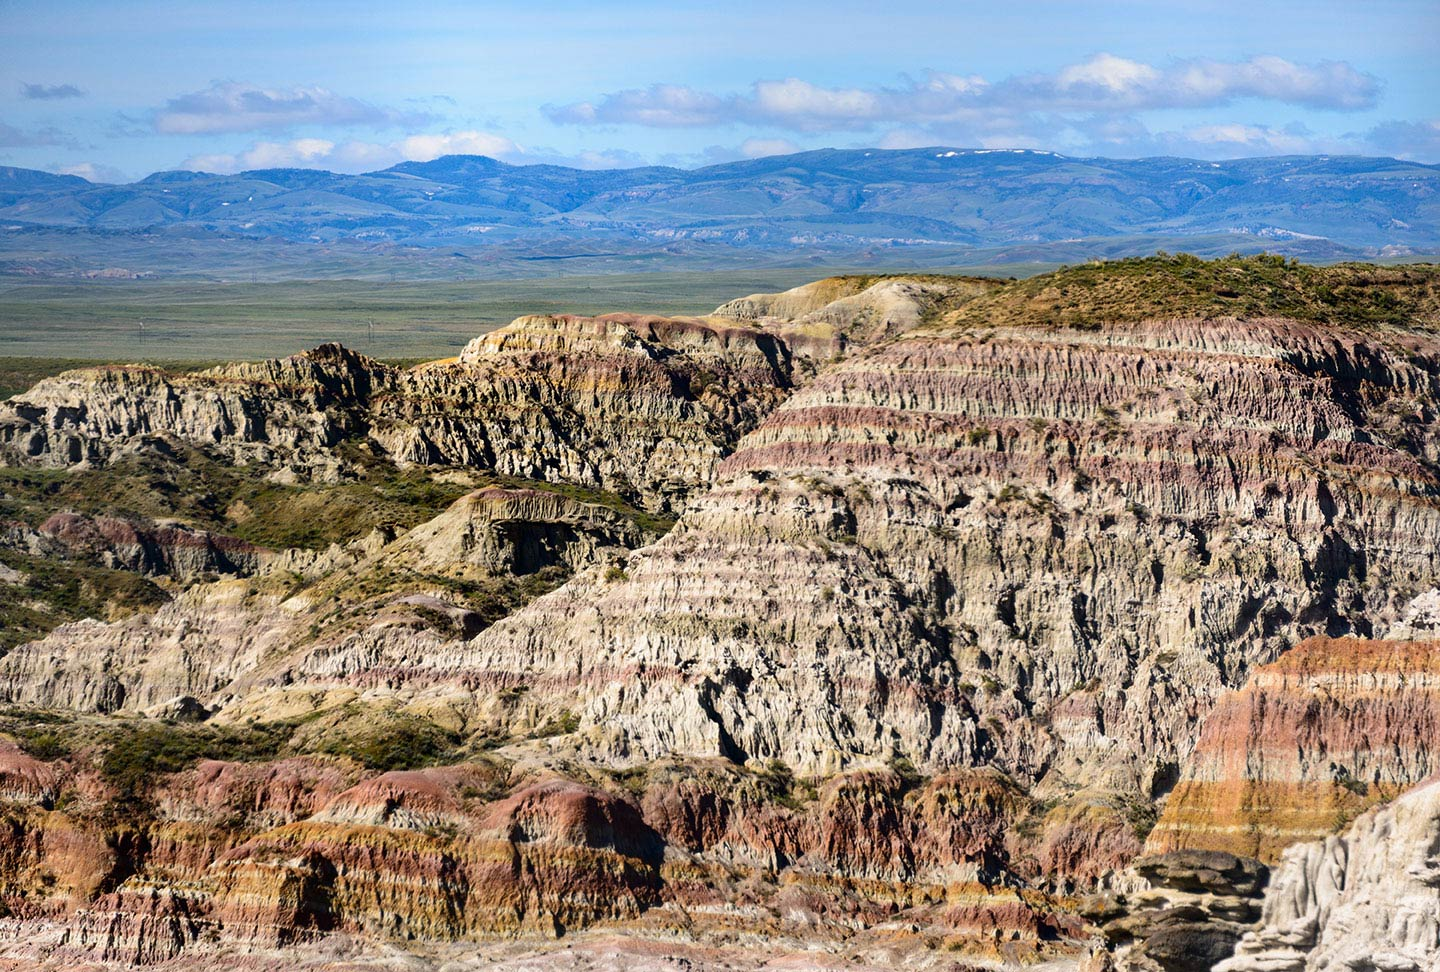 Large rock formations in Casper